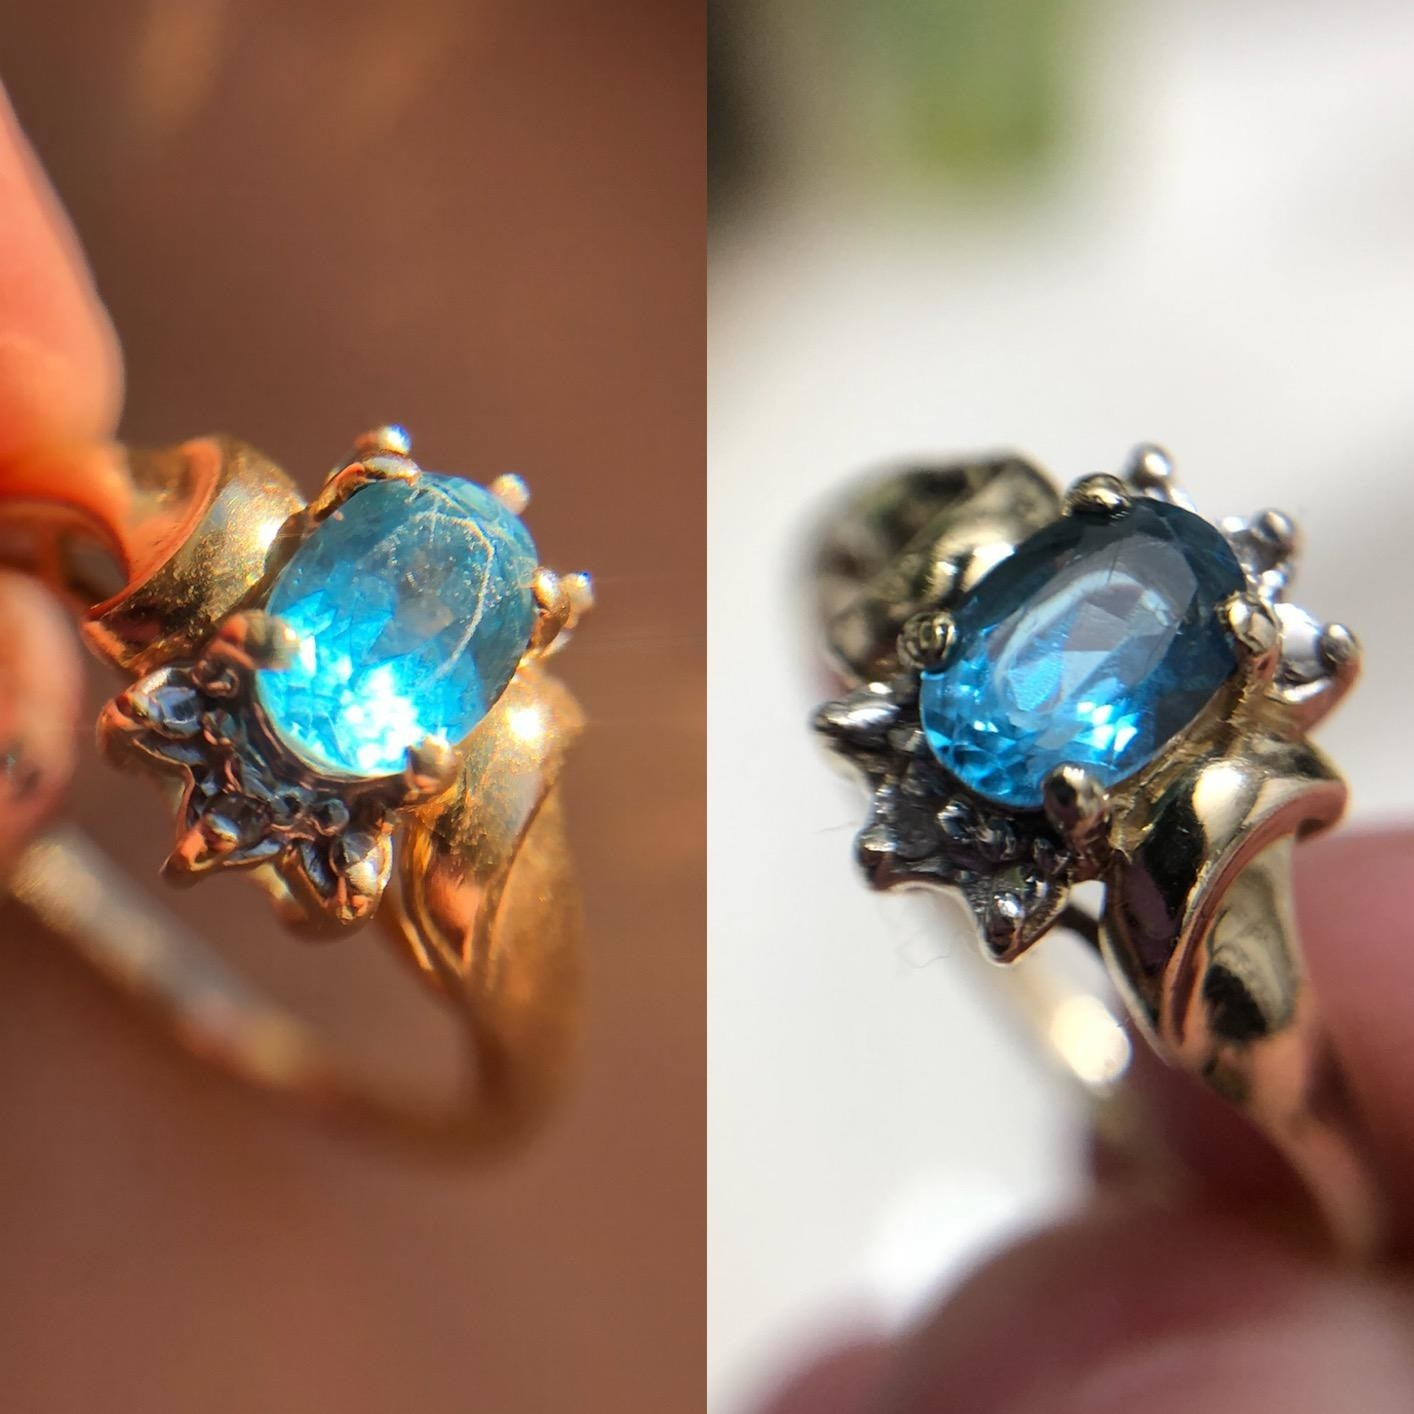 on the left a reviewer's scratched and dull blue gem ring, on the right the same ring looking cleaner and clearer